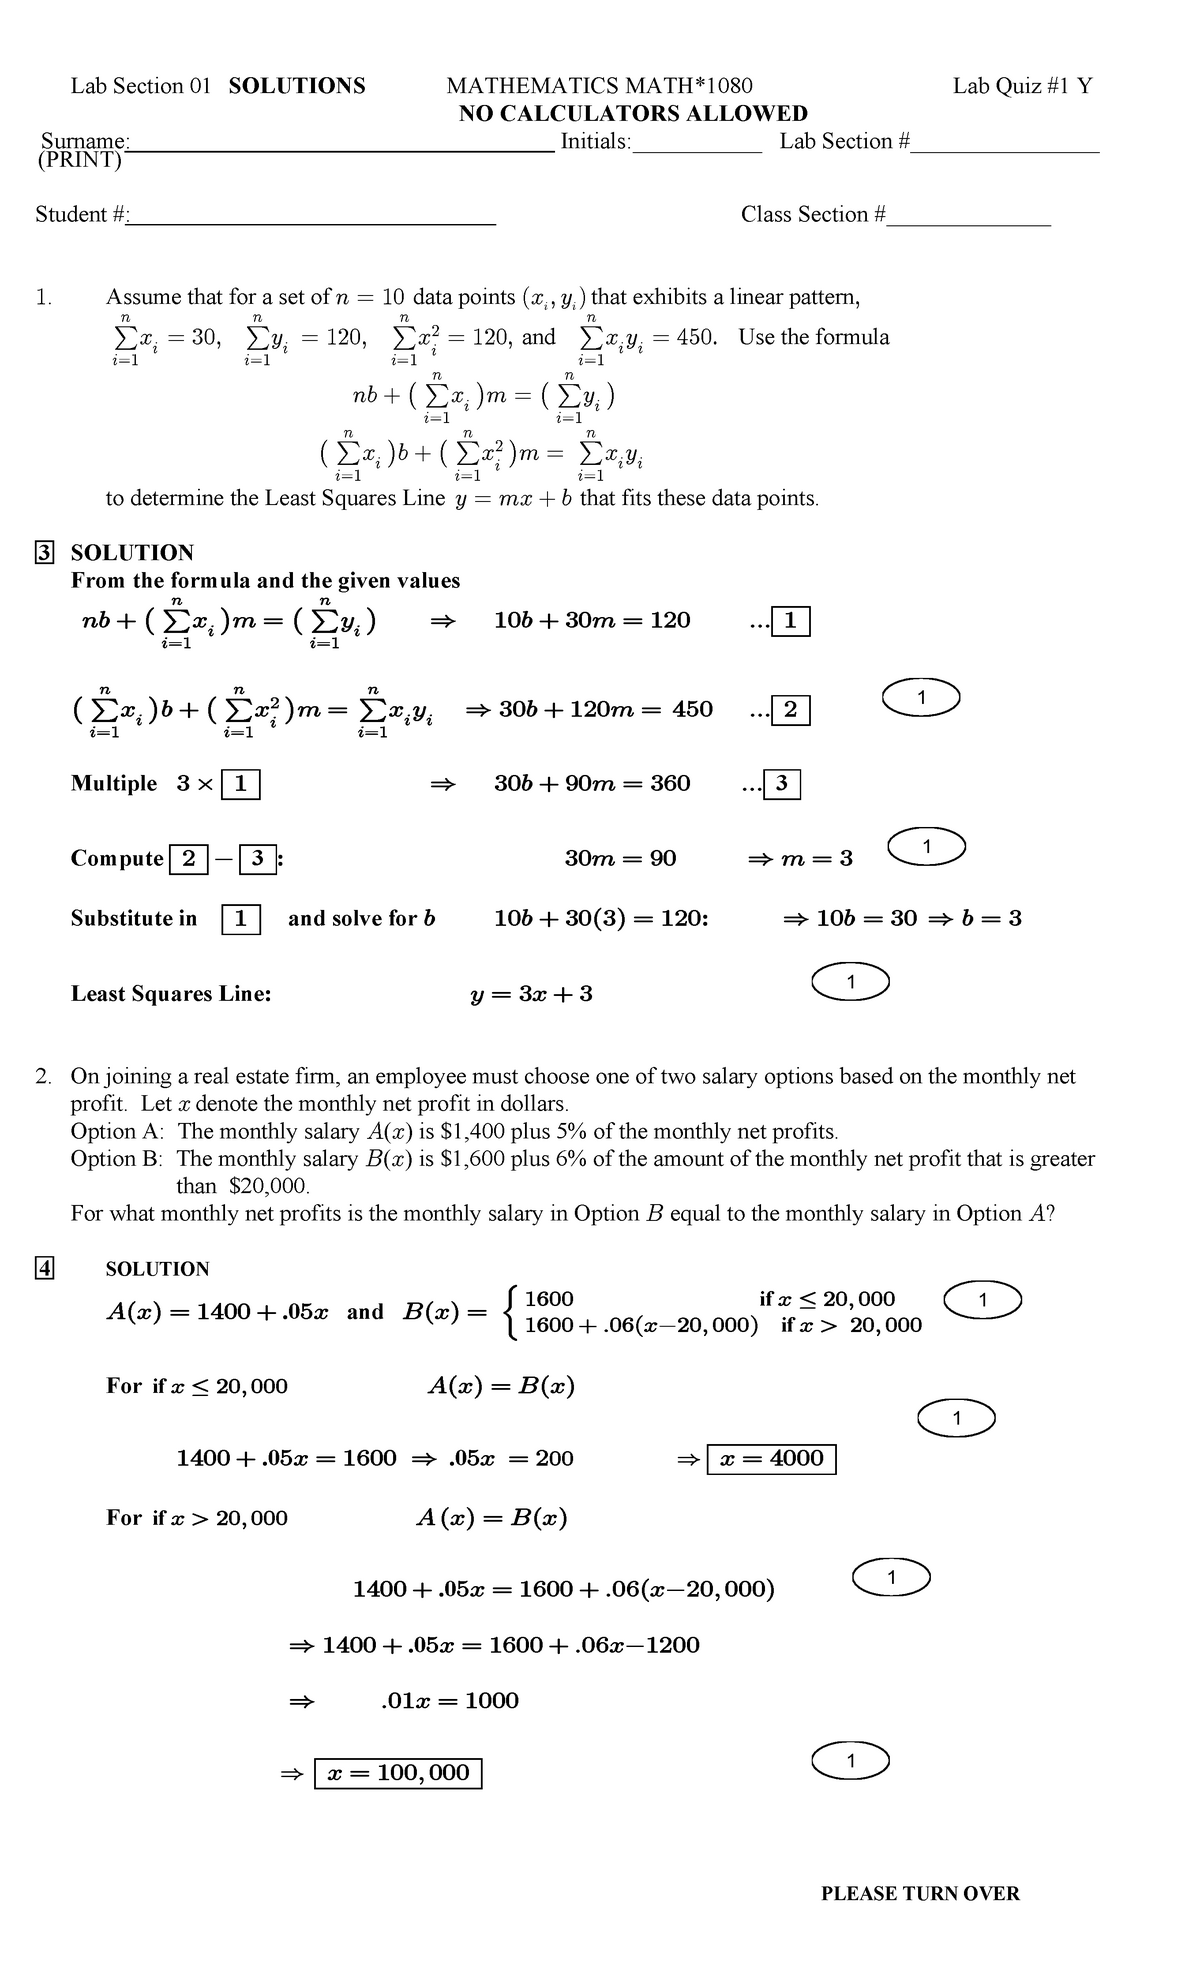 Math 1080 Lab Quiz One Solutions - MATH 1080: Elements of Calculus I